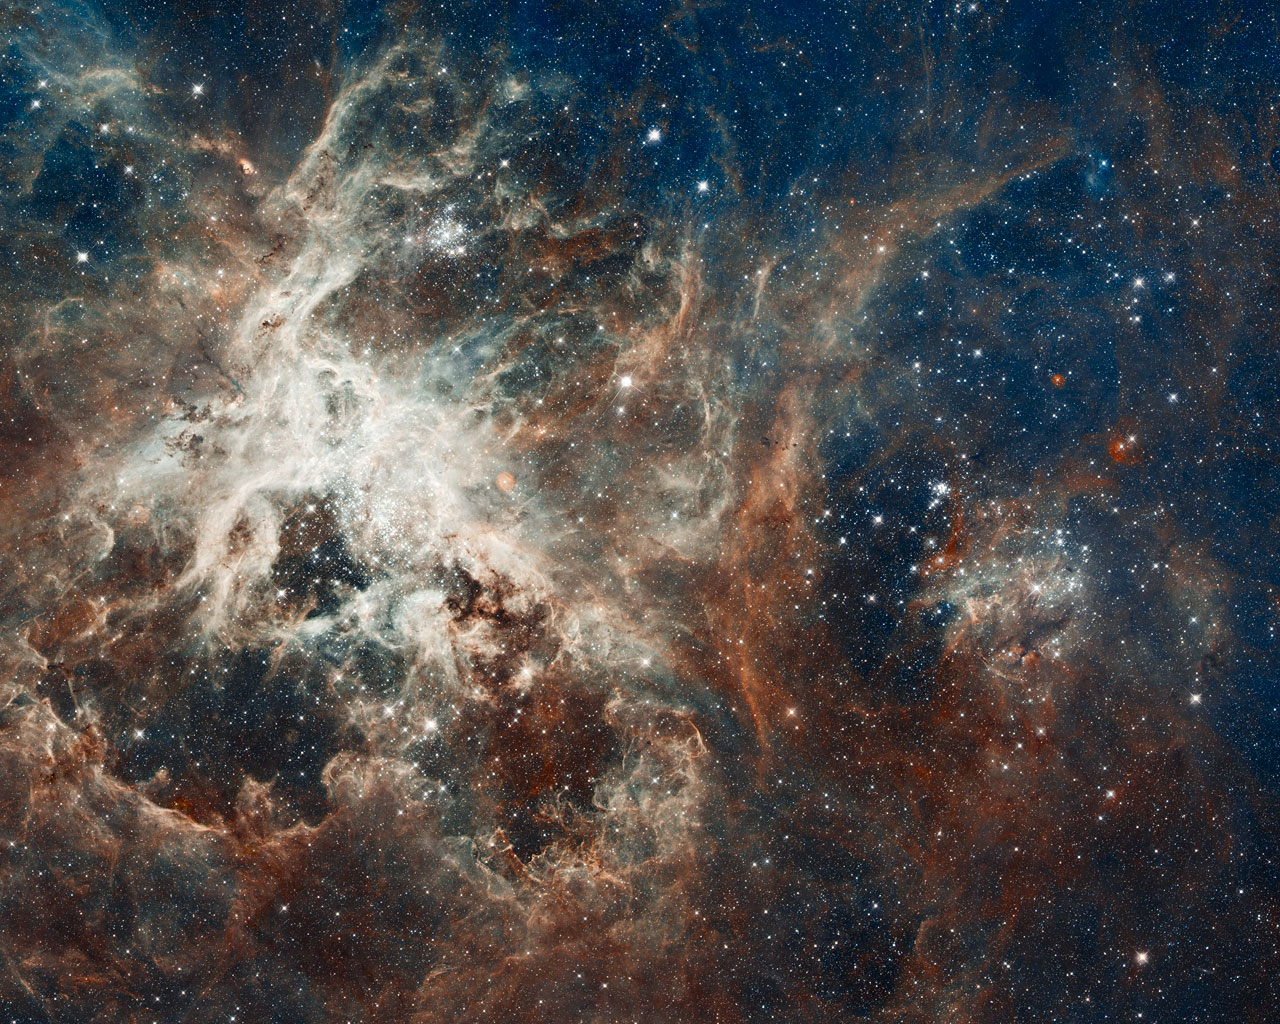 Hubble's panoramic view of a star-forming region